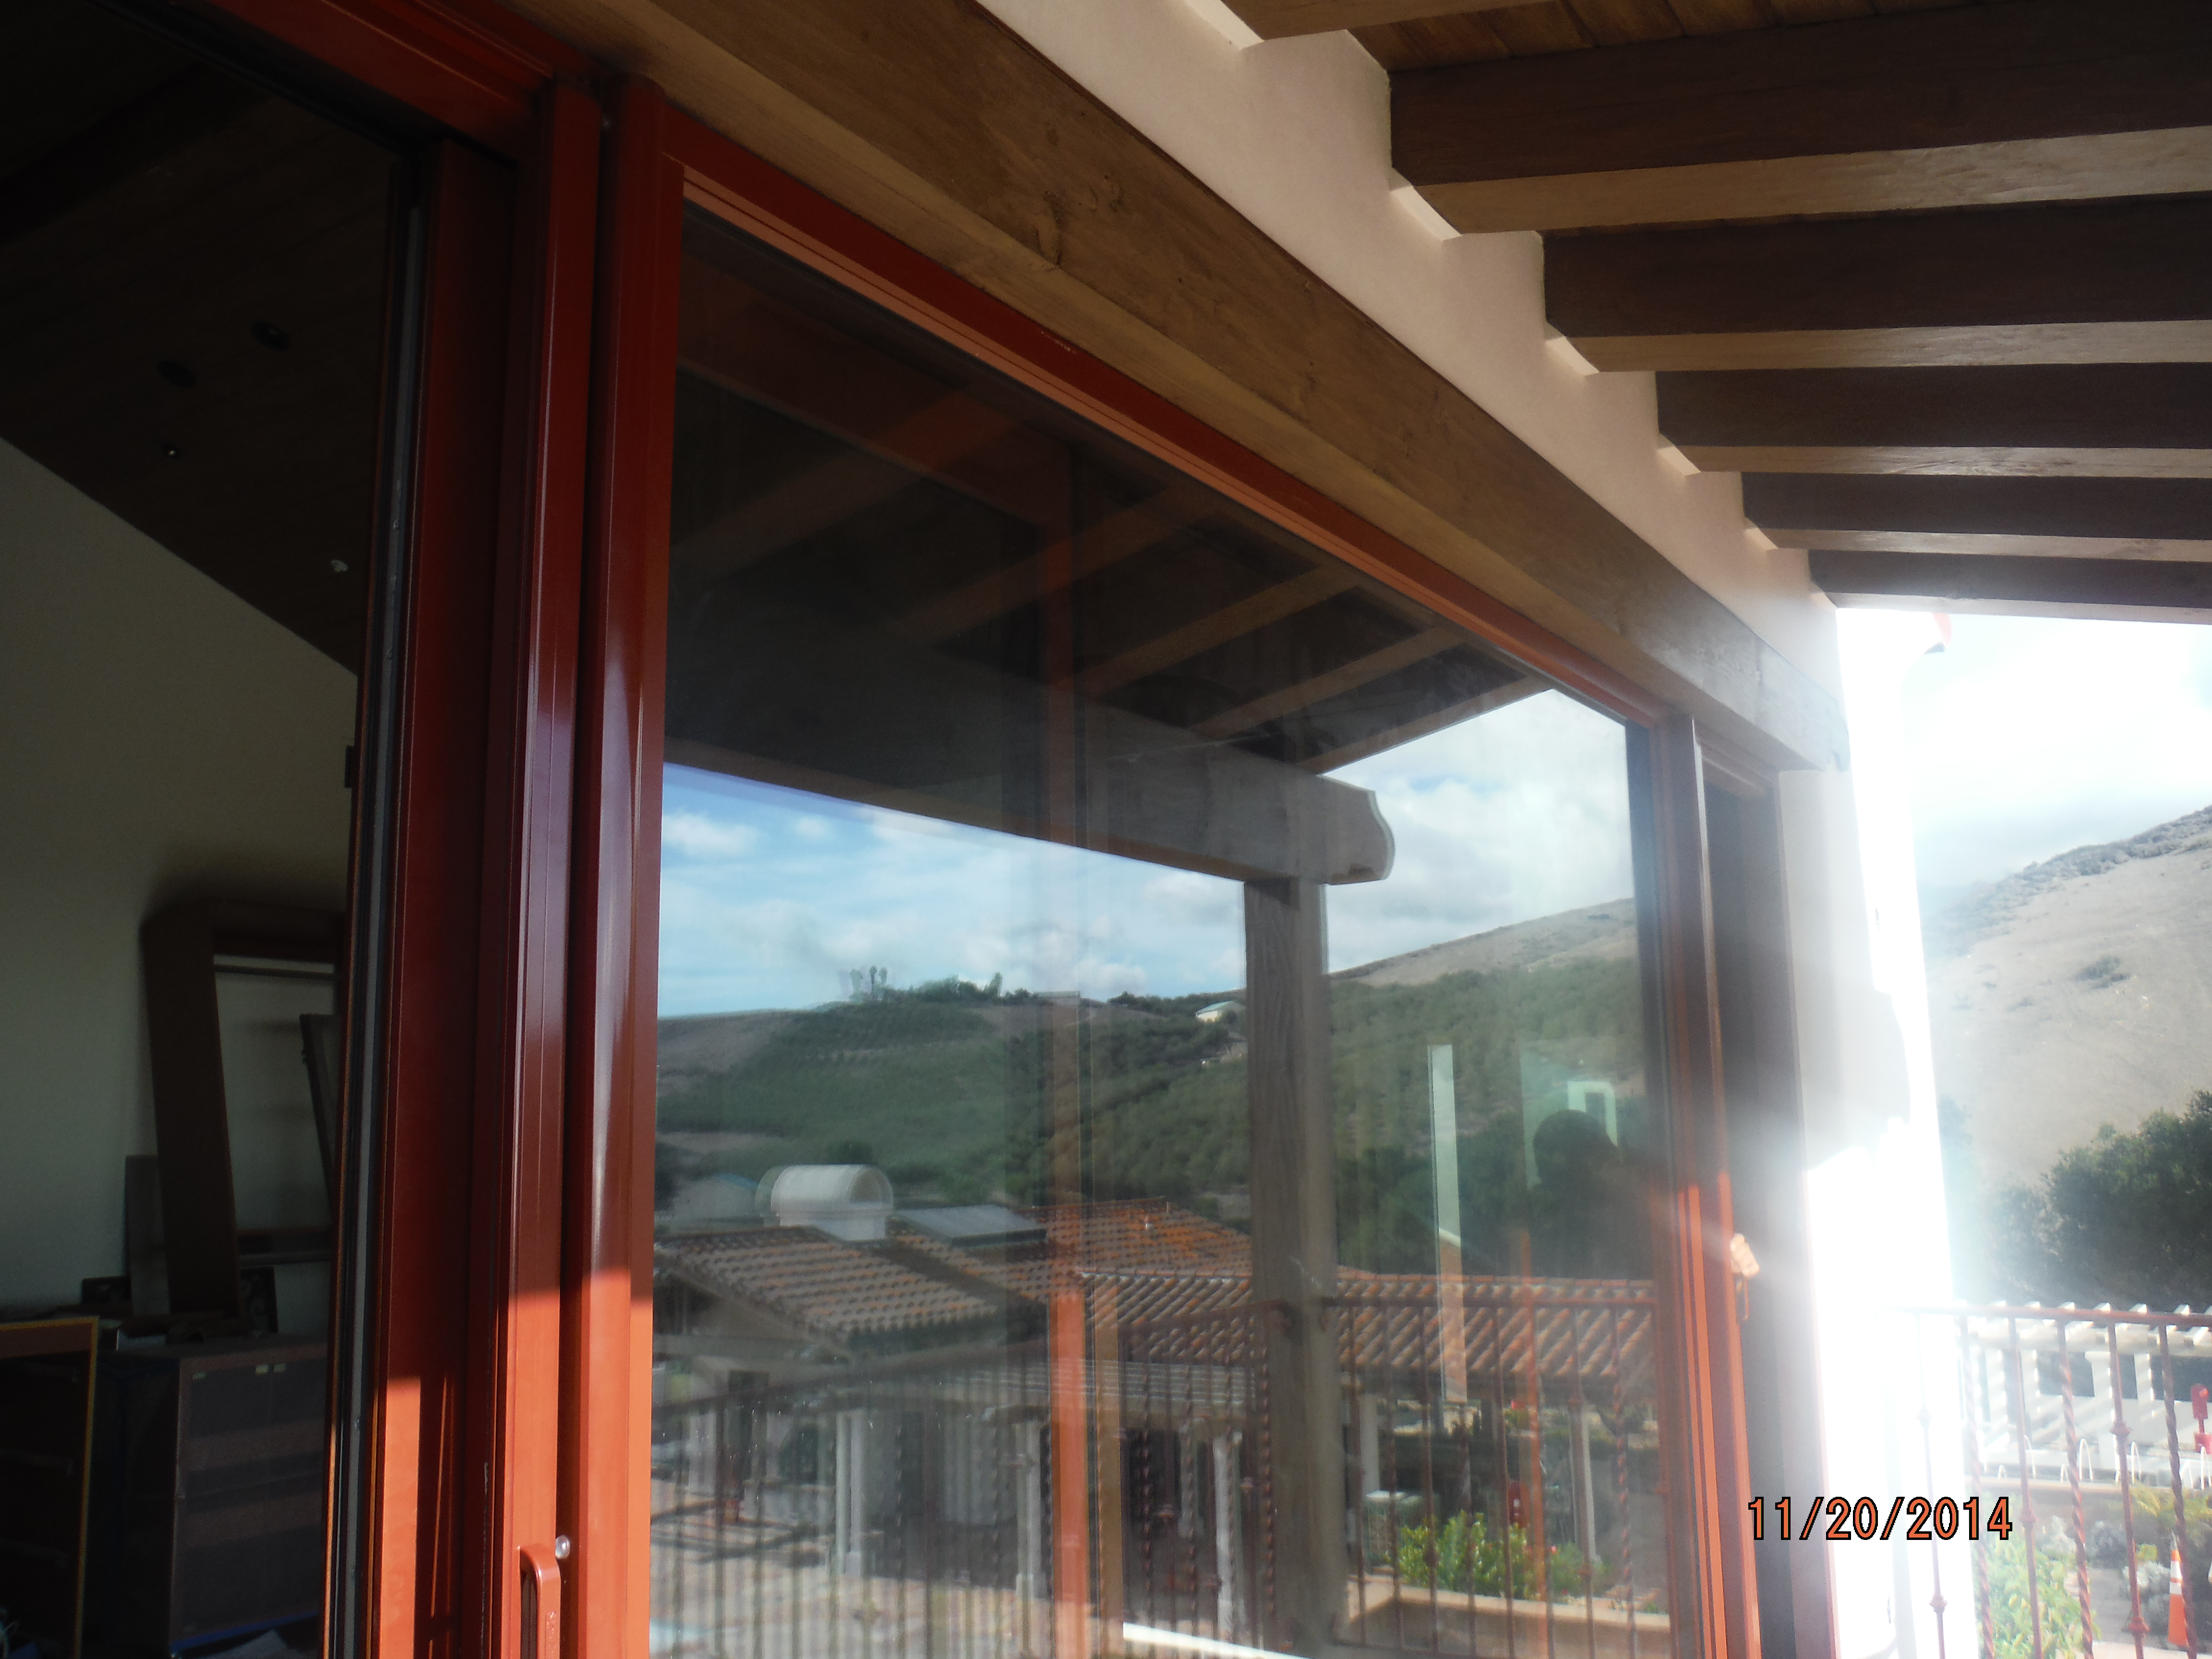 Custom painted and made Mahogany brown/brick retractable screen doors installed on the outside of the front view bi-folding doors for quick ventilation |